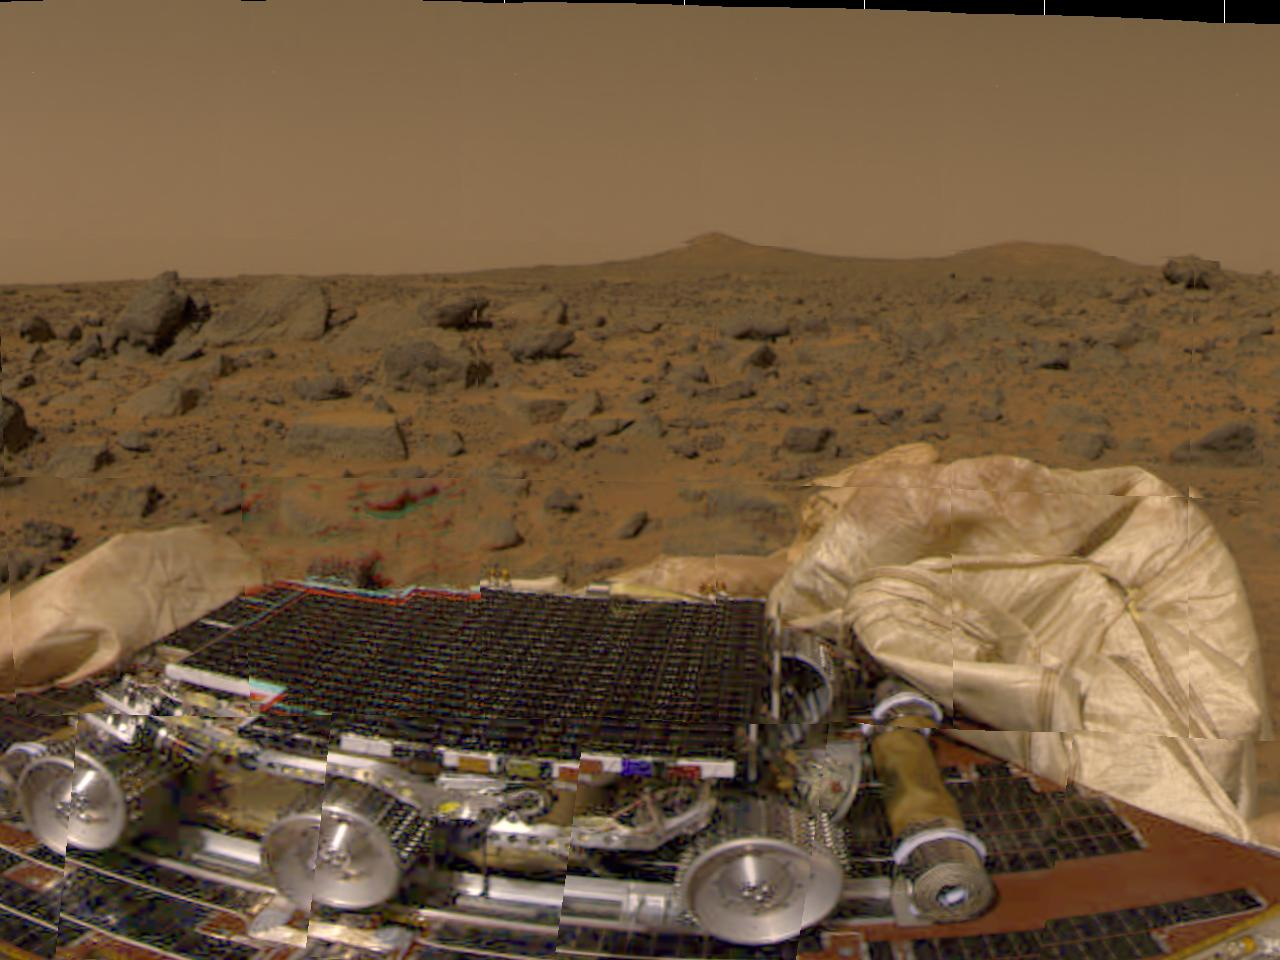 Mars Pathfinder picture taken shortly after touchdown Source: Mars Pathfinder Sol 1 (4 July 1997) Images 80811_full.jpg